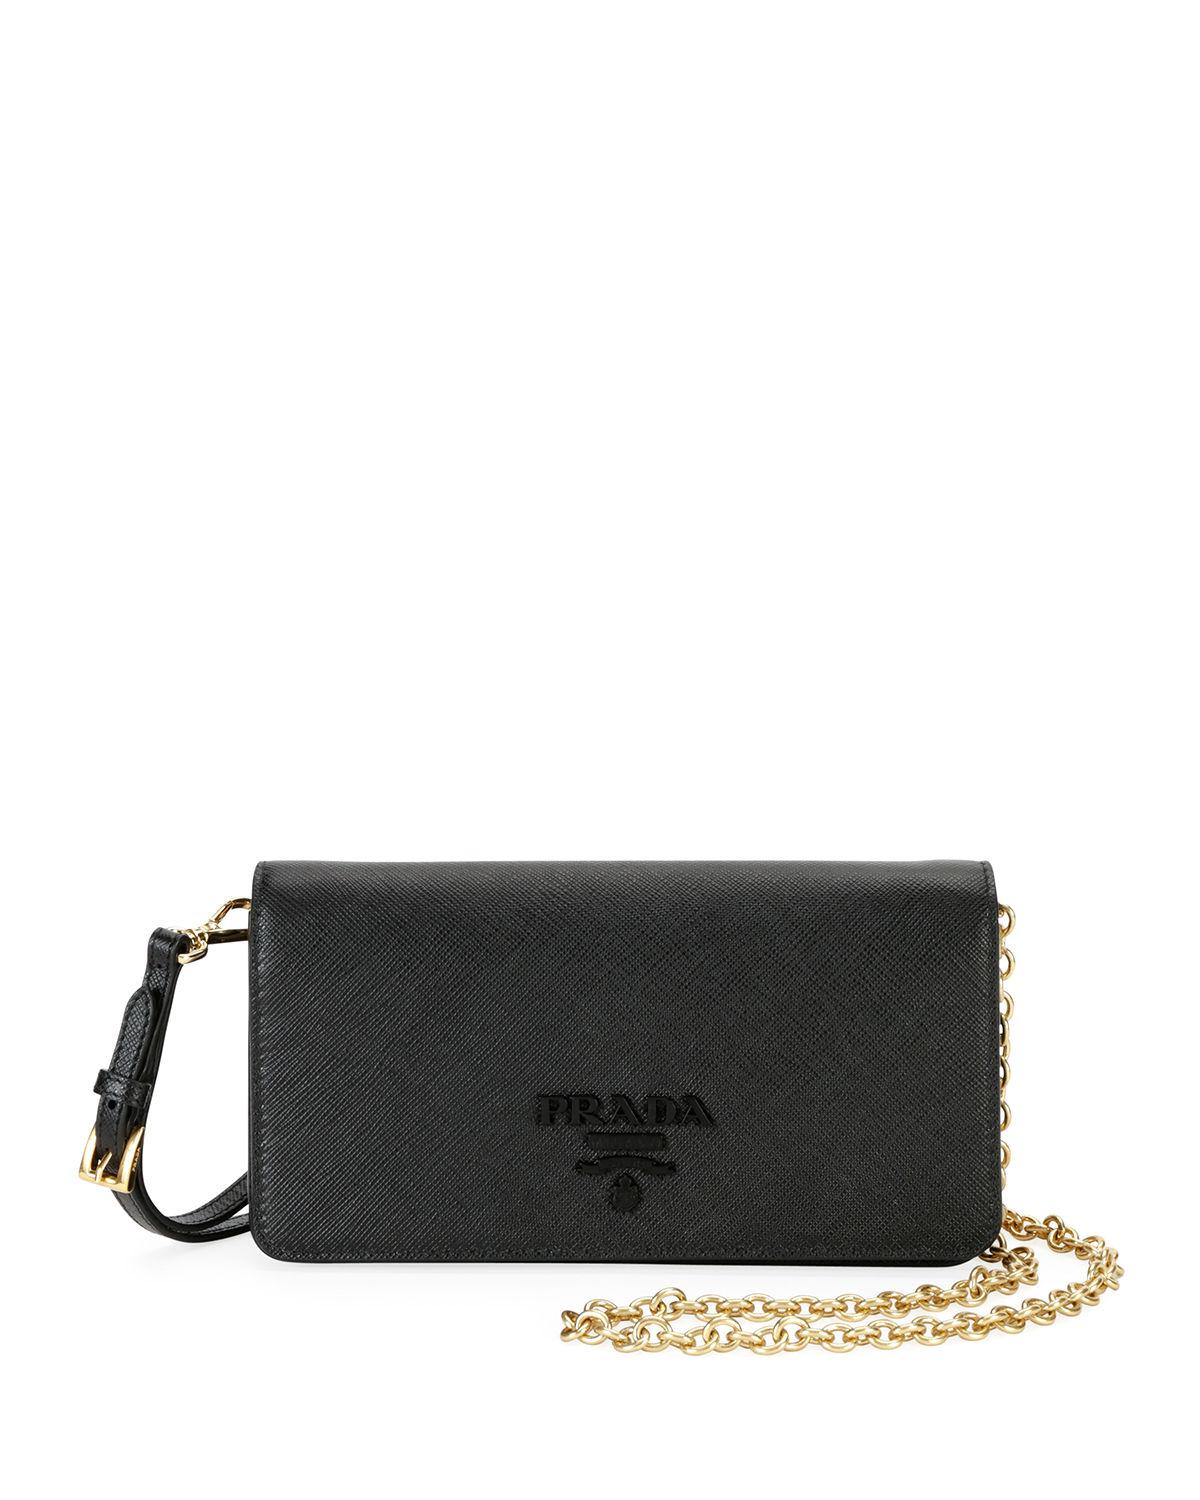 365cedefcb41 Prada Monochrome Mini Bag in Black - Lyst